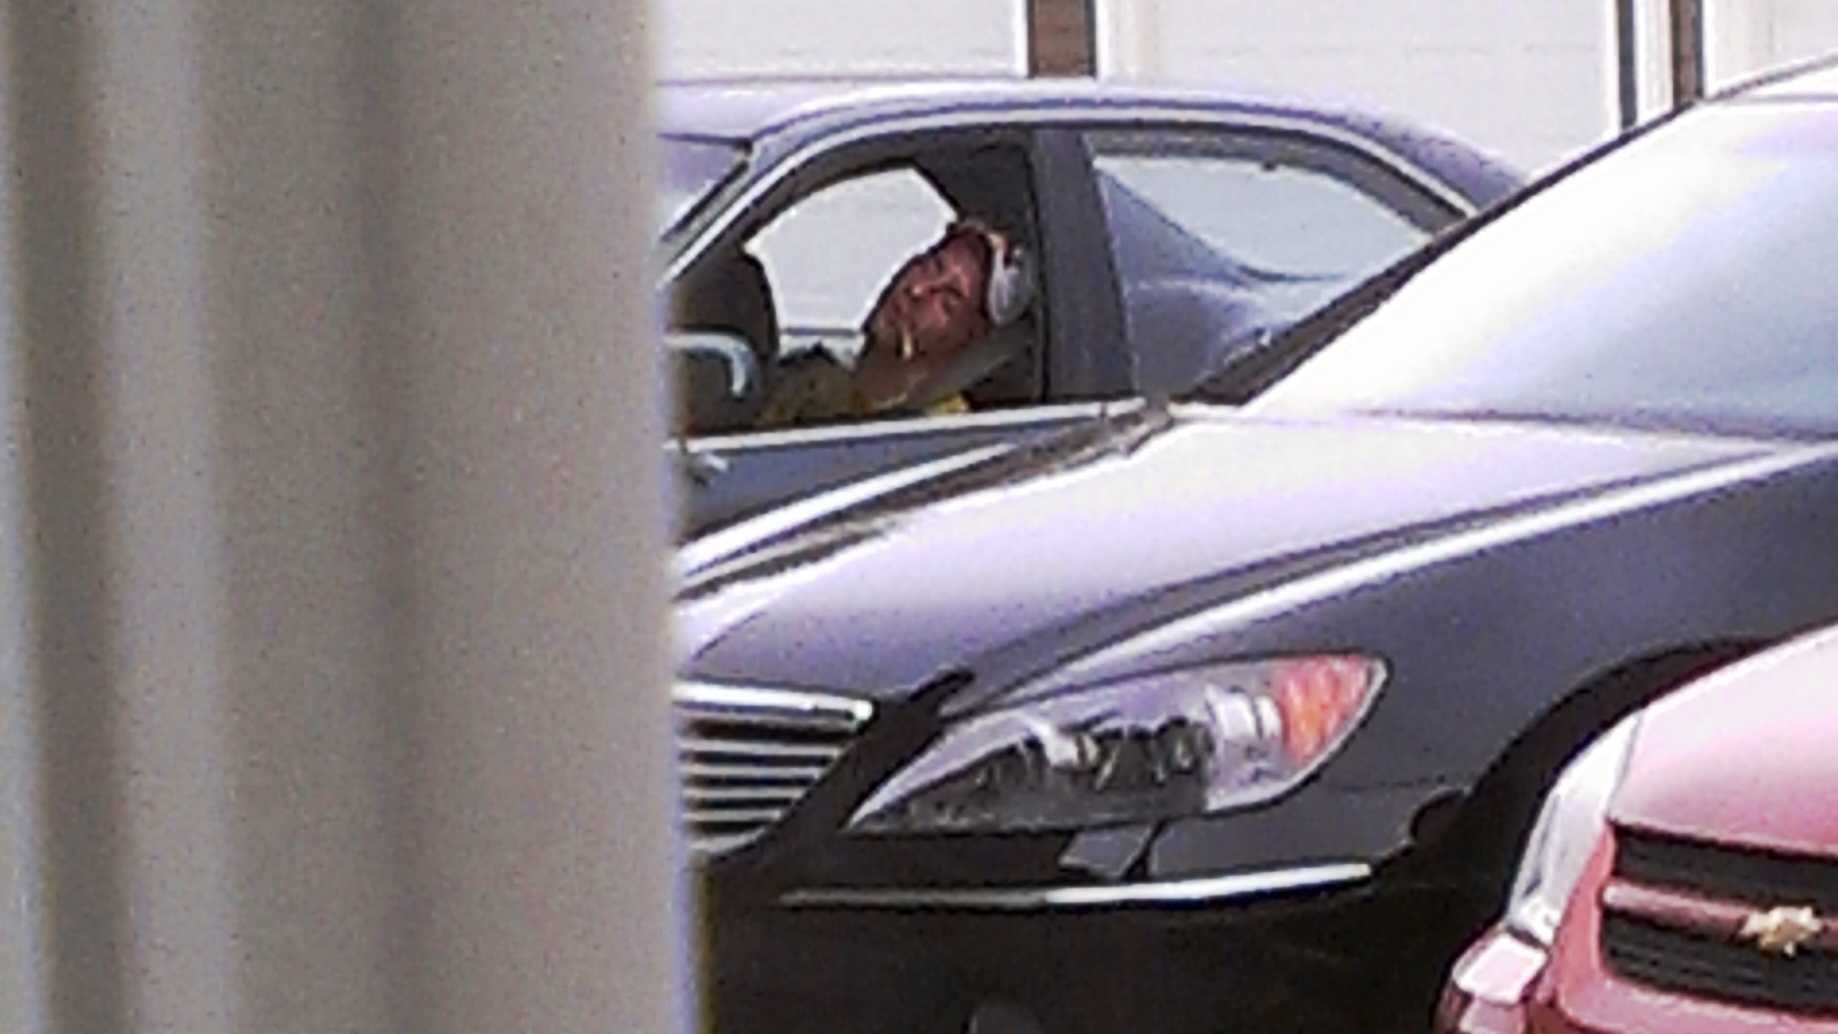 A witness took this picture of a the man sleeping in his car before a confrontation with a police officer.